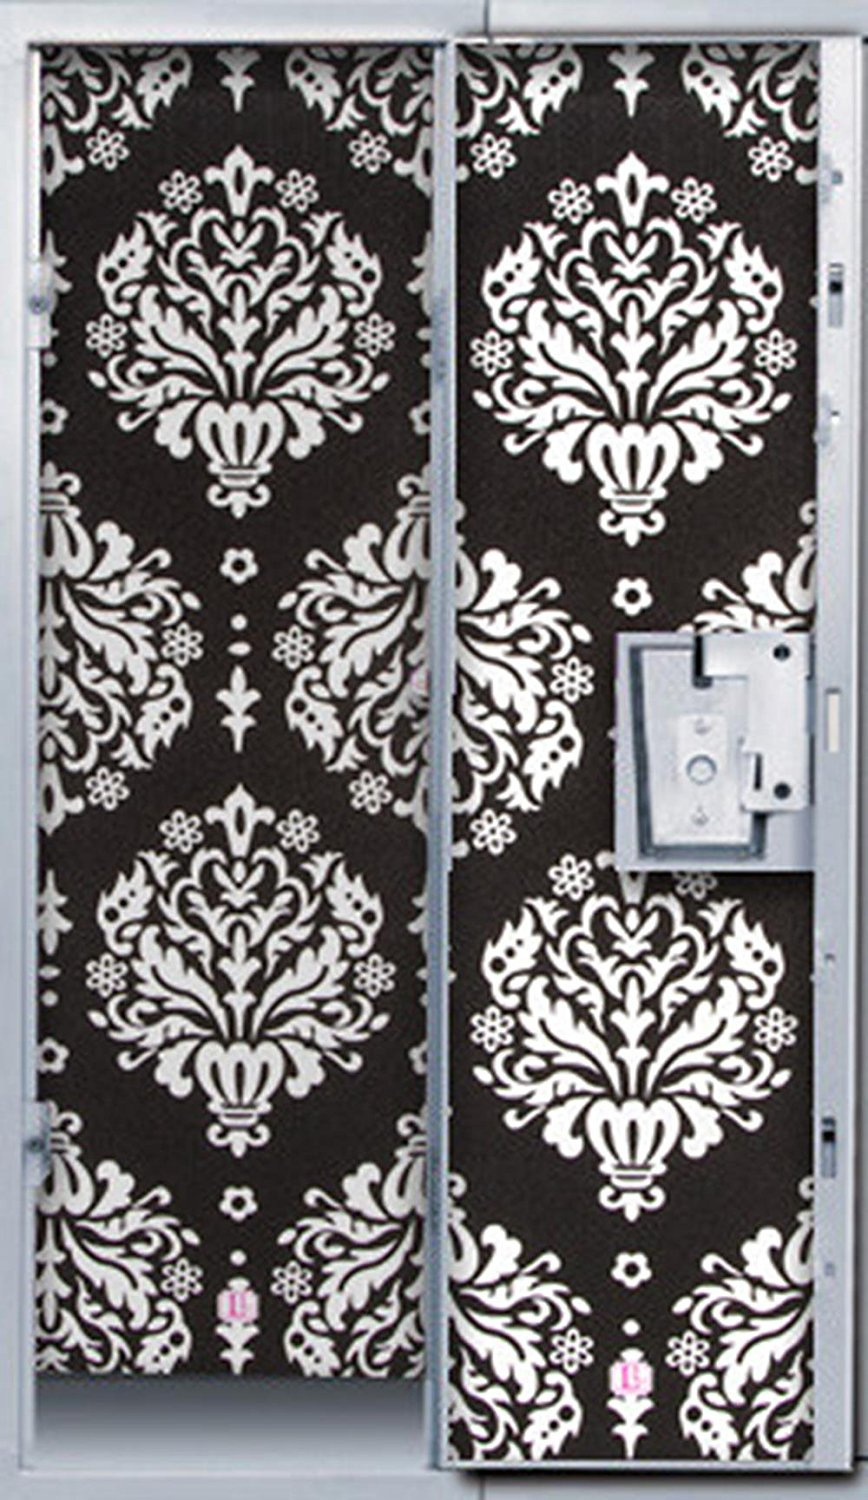 Darice Lockerlookz Wallpaper 4 Panel Black White Damask